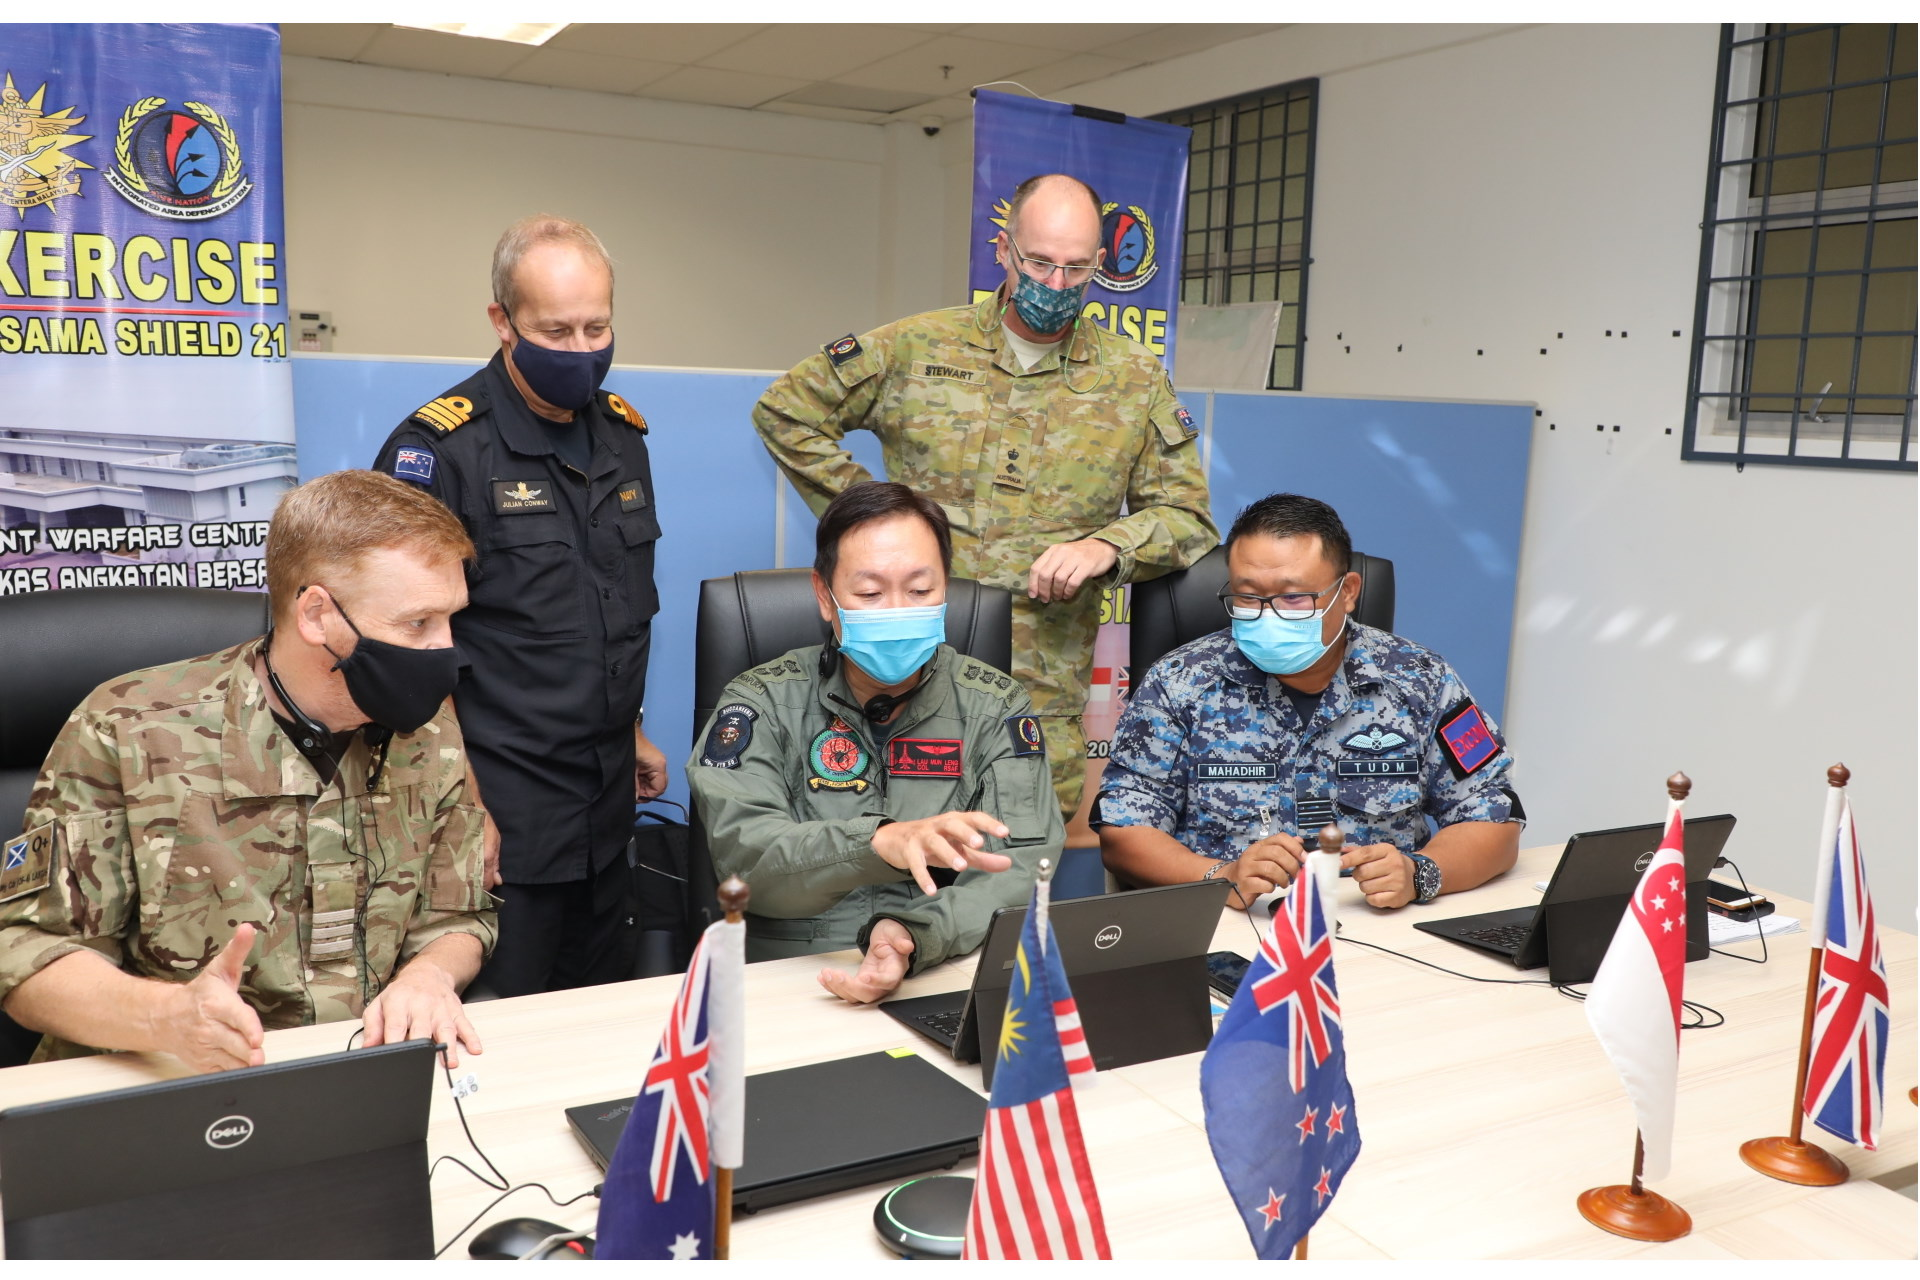 Chief of Staff HQIADS from the SAF, COL Lau Mun Leng discussing operation plans with counterparts from the FPDA member nations. Photo Credit: MYJFHQ.